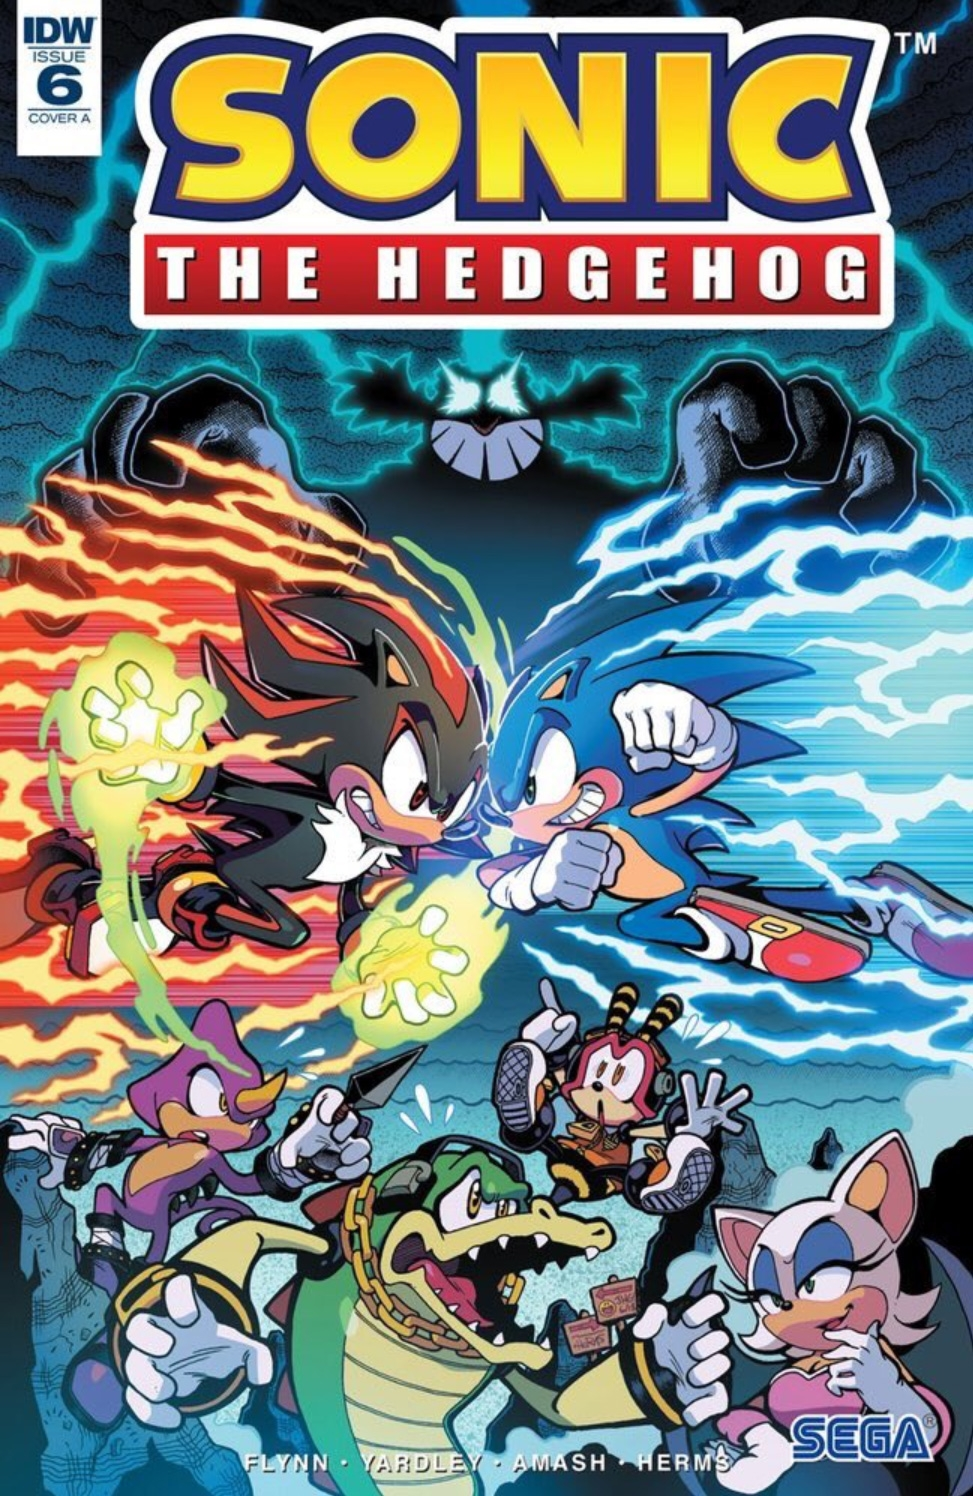 Sonic The Hedgehog #6 Cover A